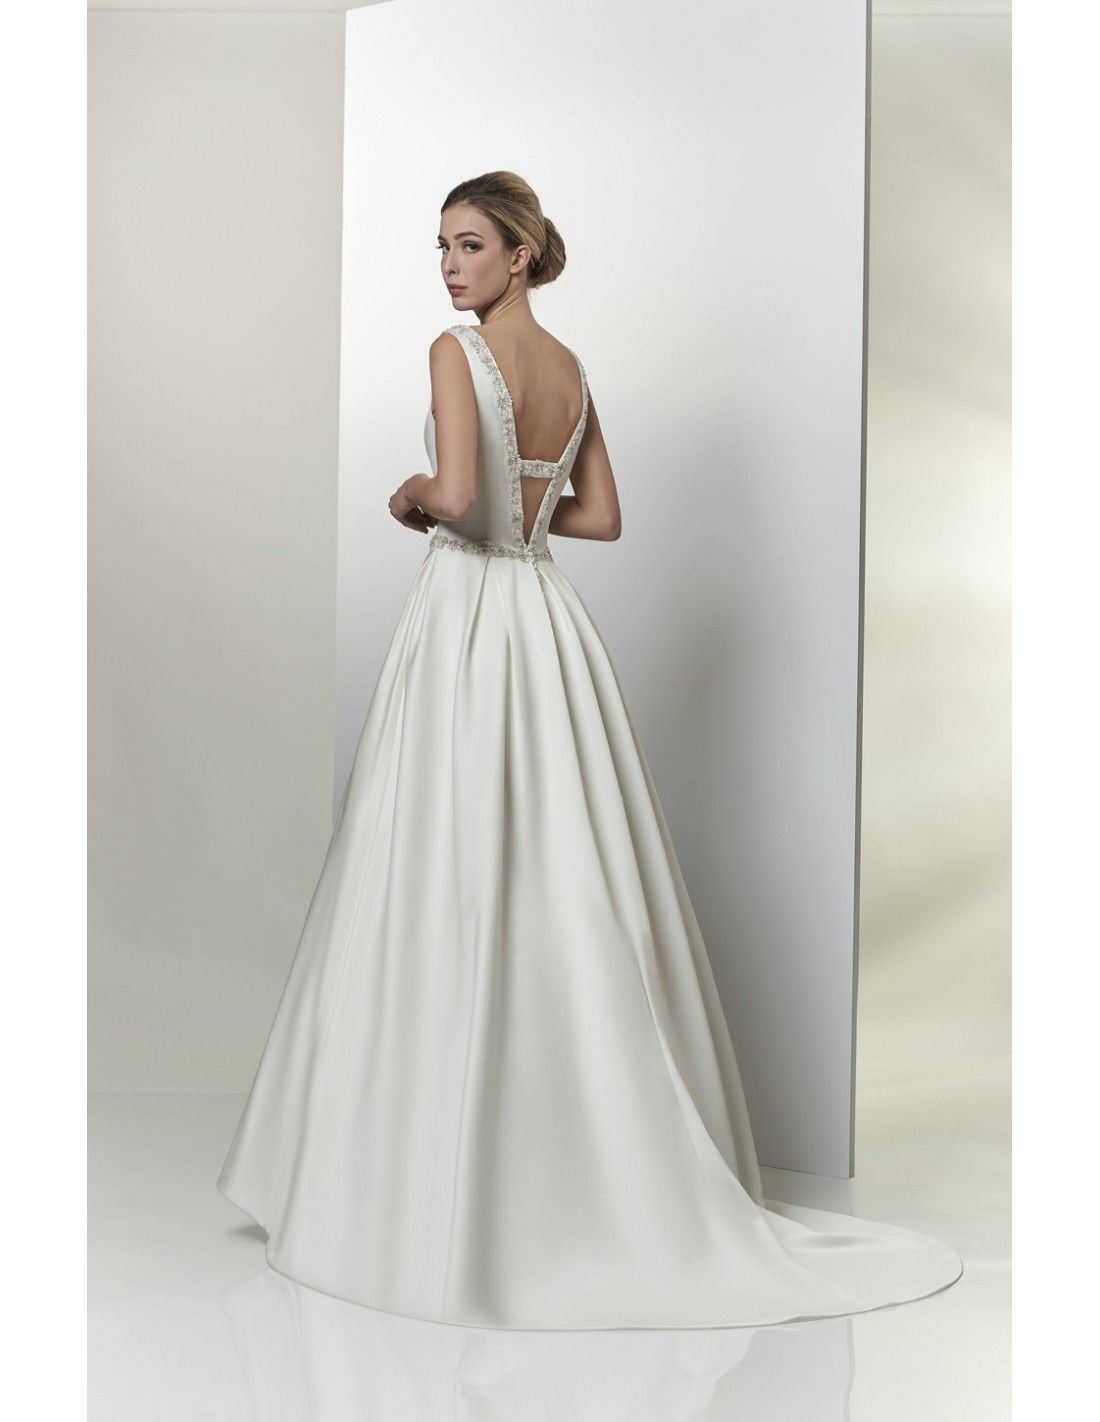 Satin ballgown with detailed back available at Spotlight Formal Wear! #SpotlightBridal